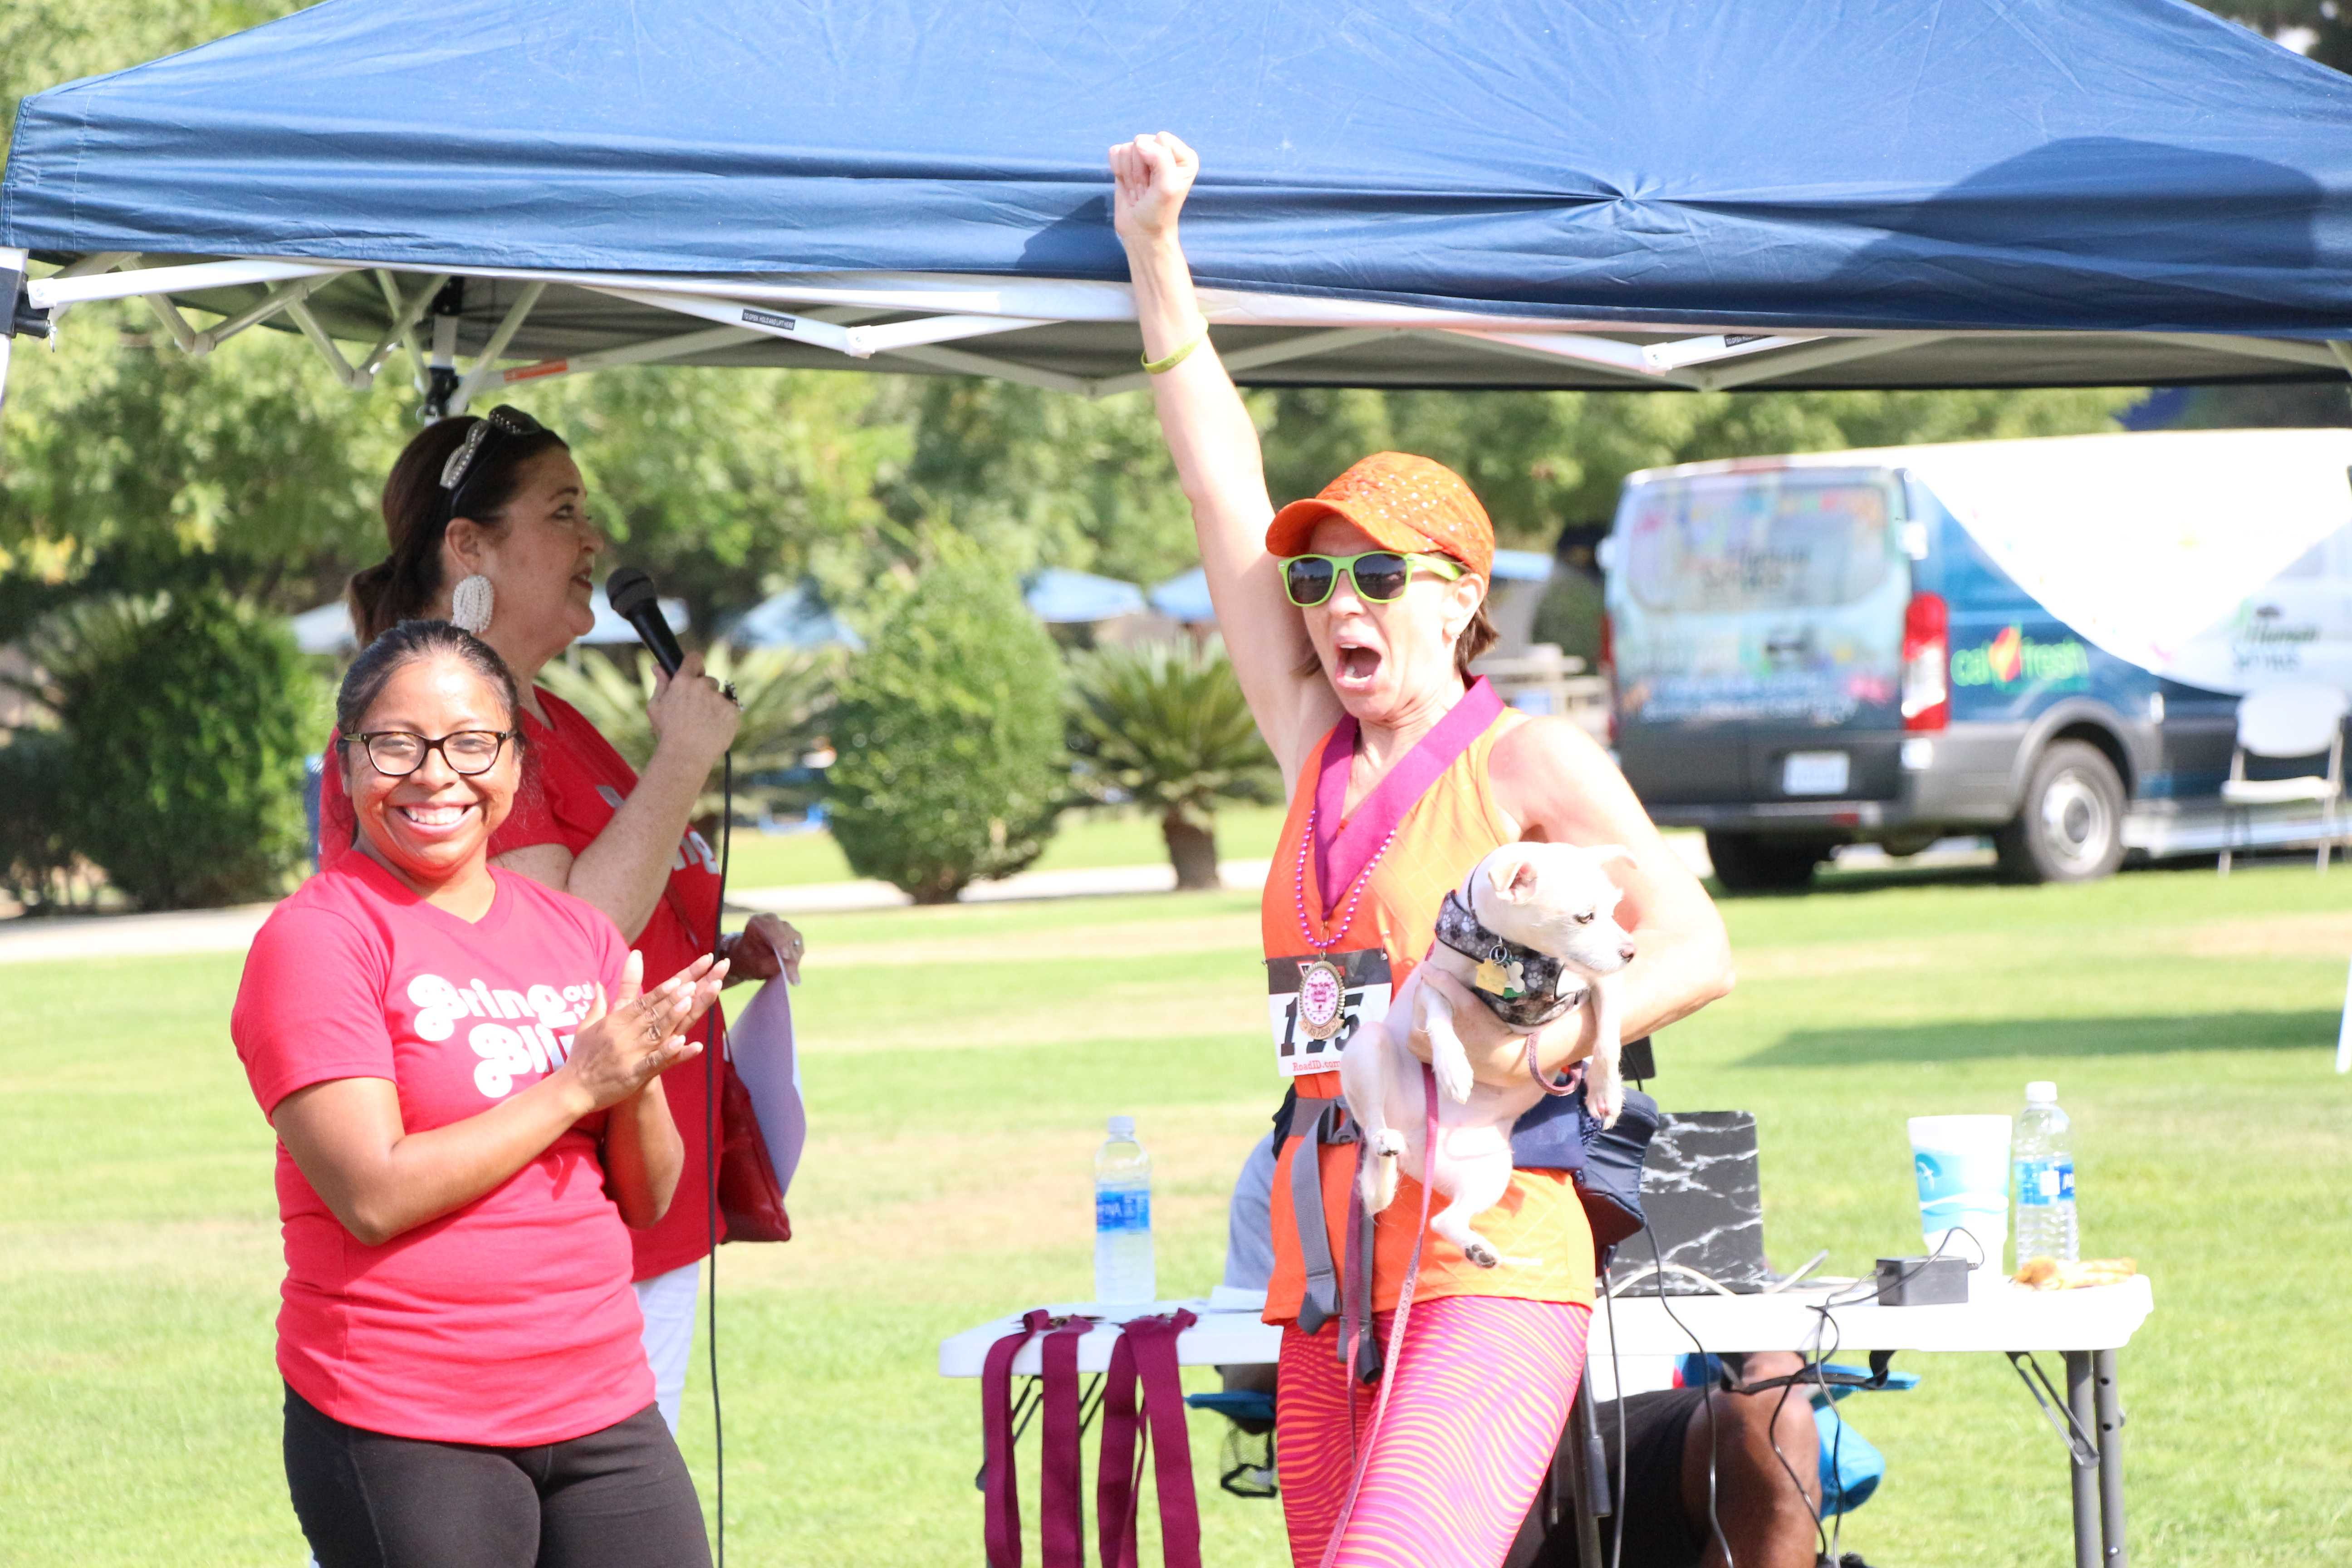 Sara Danville won first place in her age group at the Bring out the Bling 5K Fun Run benefitting Dress for Success Bakersfield at CSUB on Saturday. Photo by Alejandra Flores/ The Runner